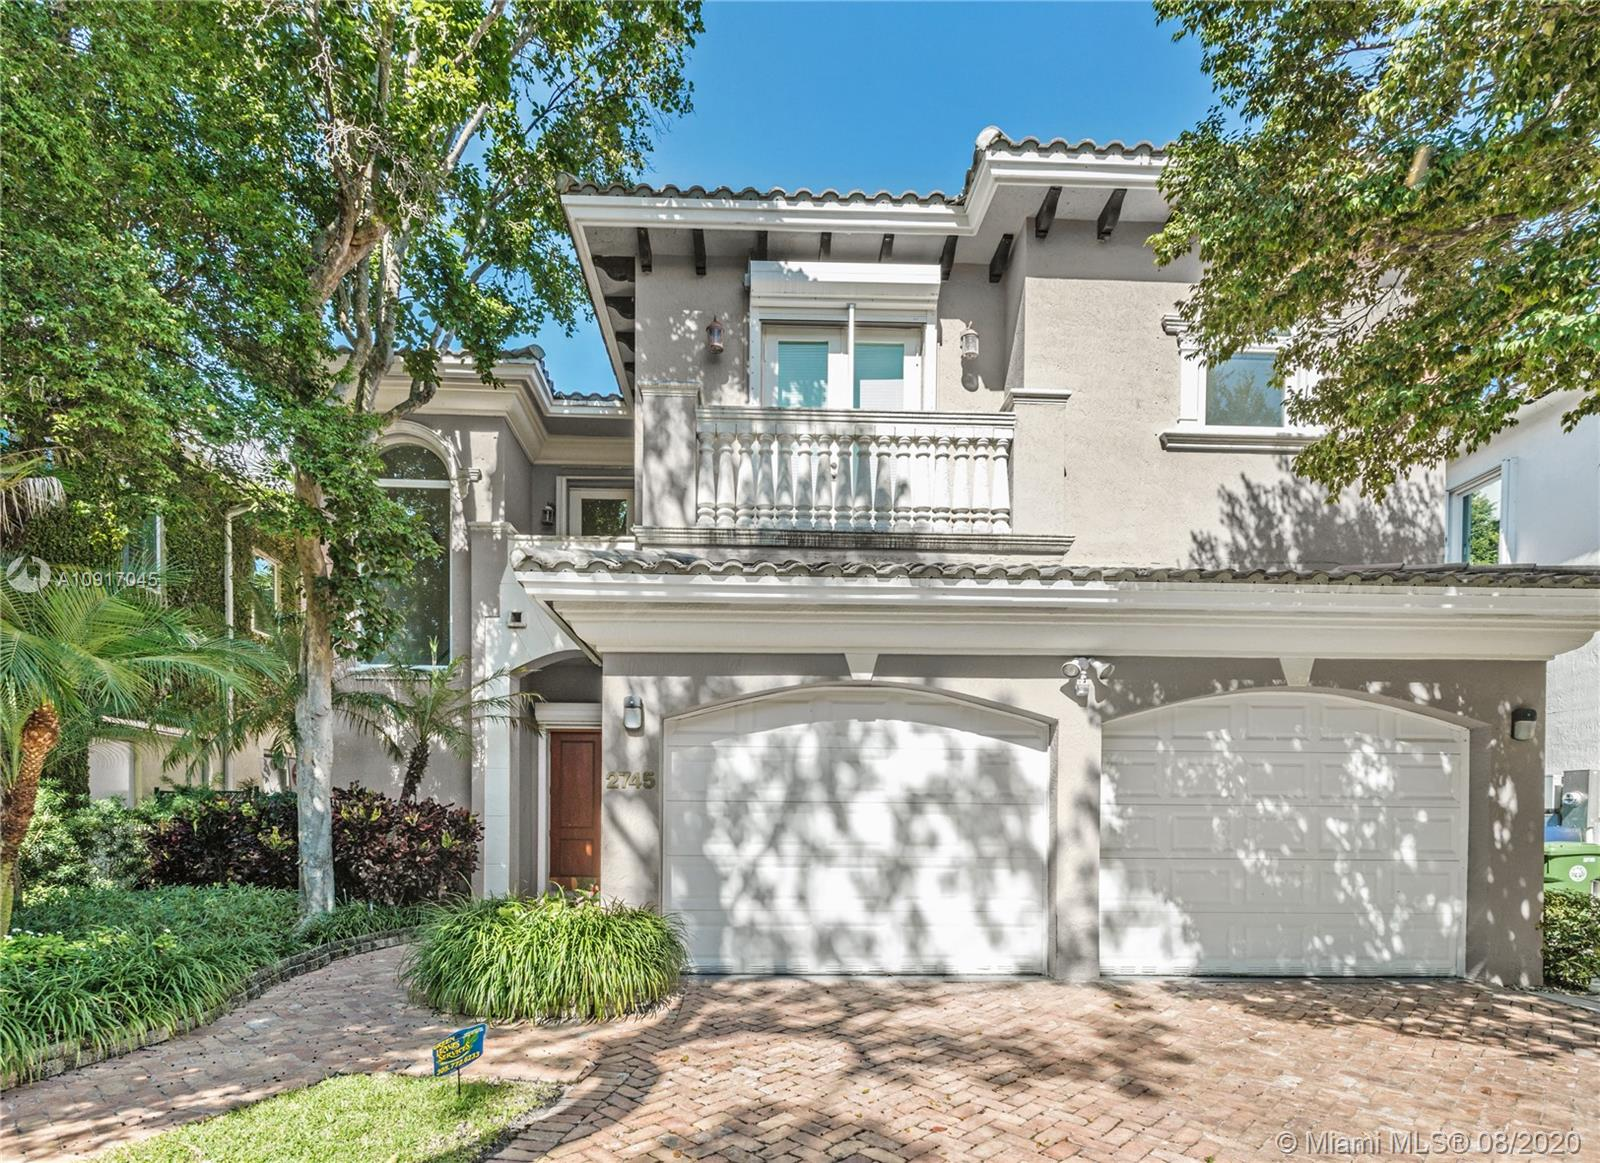 Enjoy a fabulous lifestyle, location and design in this 2002 built home. Situated inside gated Villas of Vizcaya, a prestigious community of only 13 homes. Two Story 5 bed/5.5 bath home with Contemporary finishes, high ceilings and granite flooring. Large master suite with 2 walk-in closets and bright master bathroom. Grand rooms for comfortable living and entertainment overlooking private pool and patio. 2 Car Garage. Hurricane protection including shutters and impact windows. Generator. Located in a beautiful cul-de-sac road with little traffic, police patrol and just steps to Alice Wainright Park directly on Biscayne Bay. Easy access to I95 and all the excitement in Brickell, Downtown Miami, Key Biscayne, Coconut Grove and More!